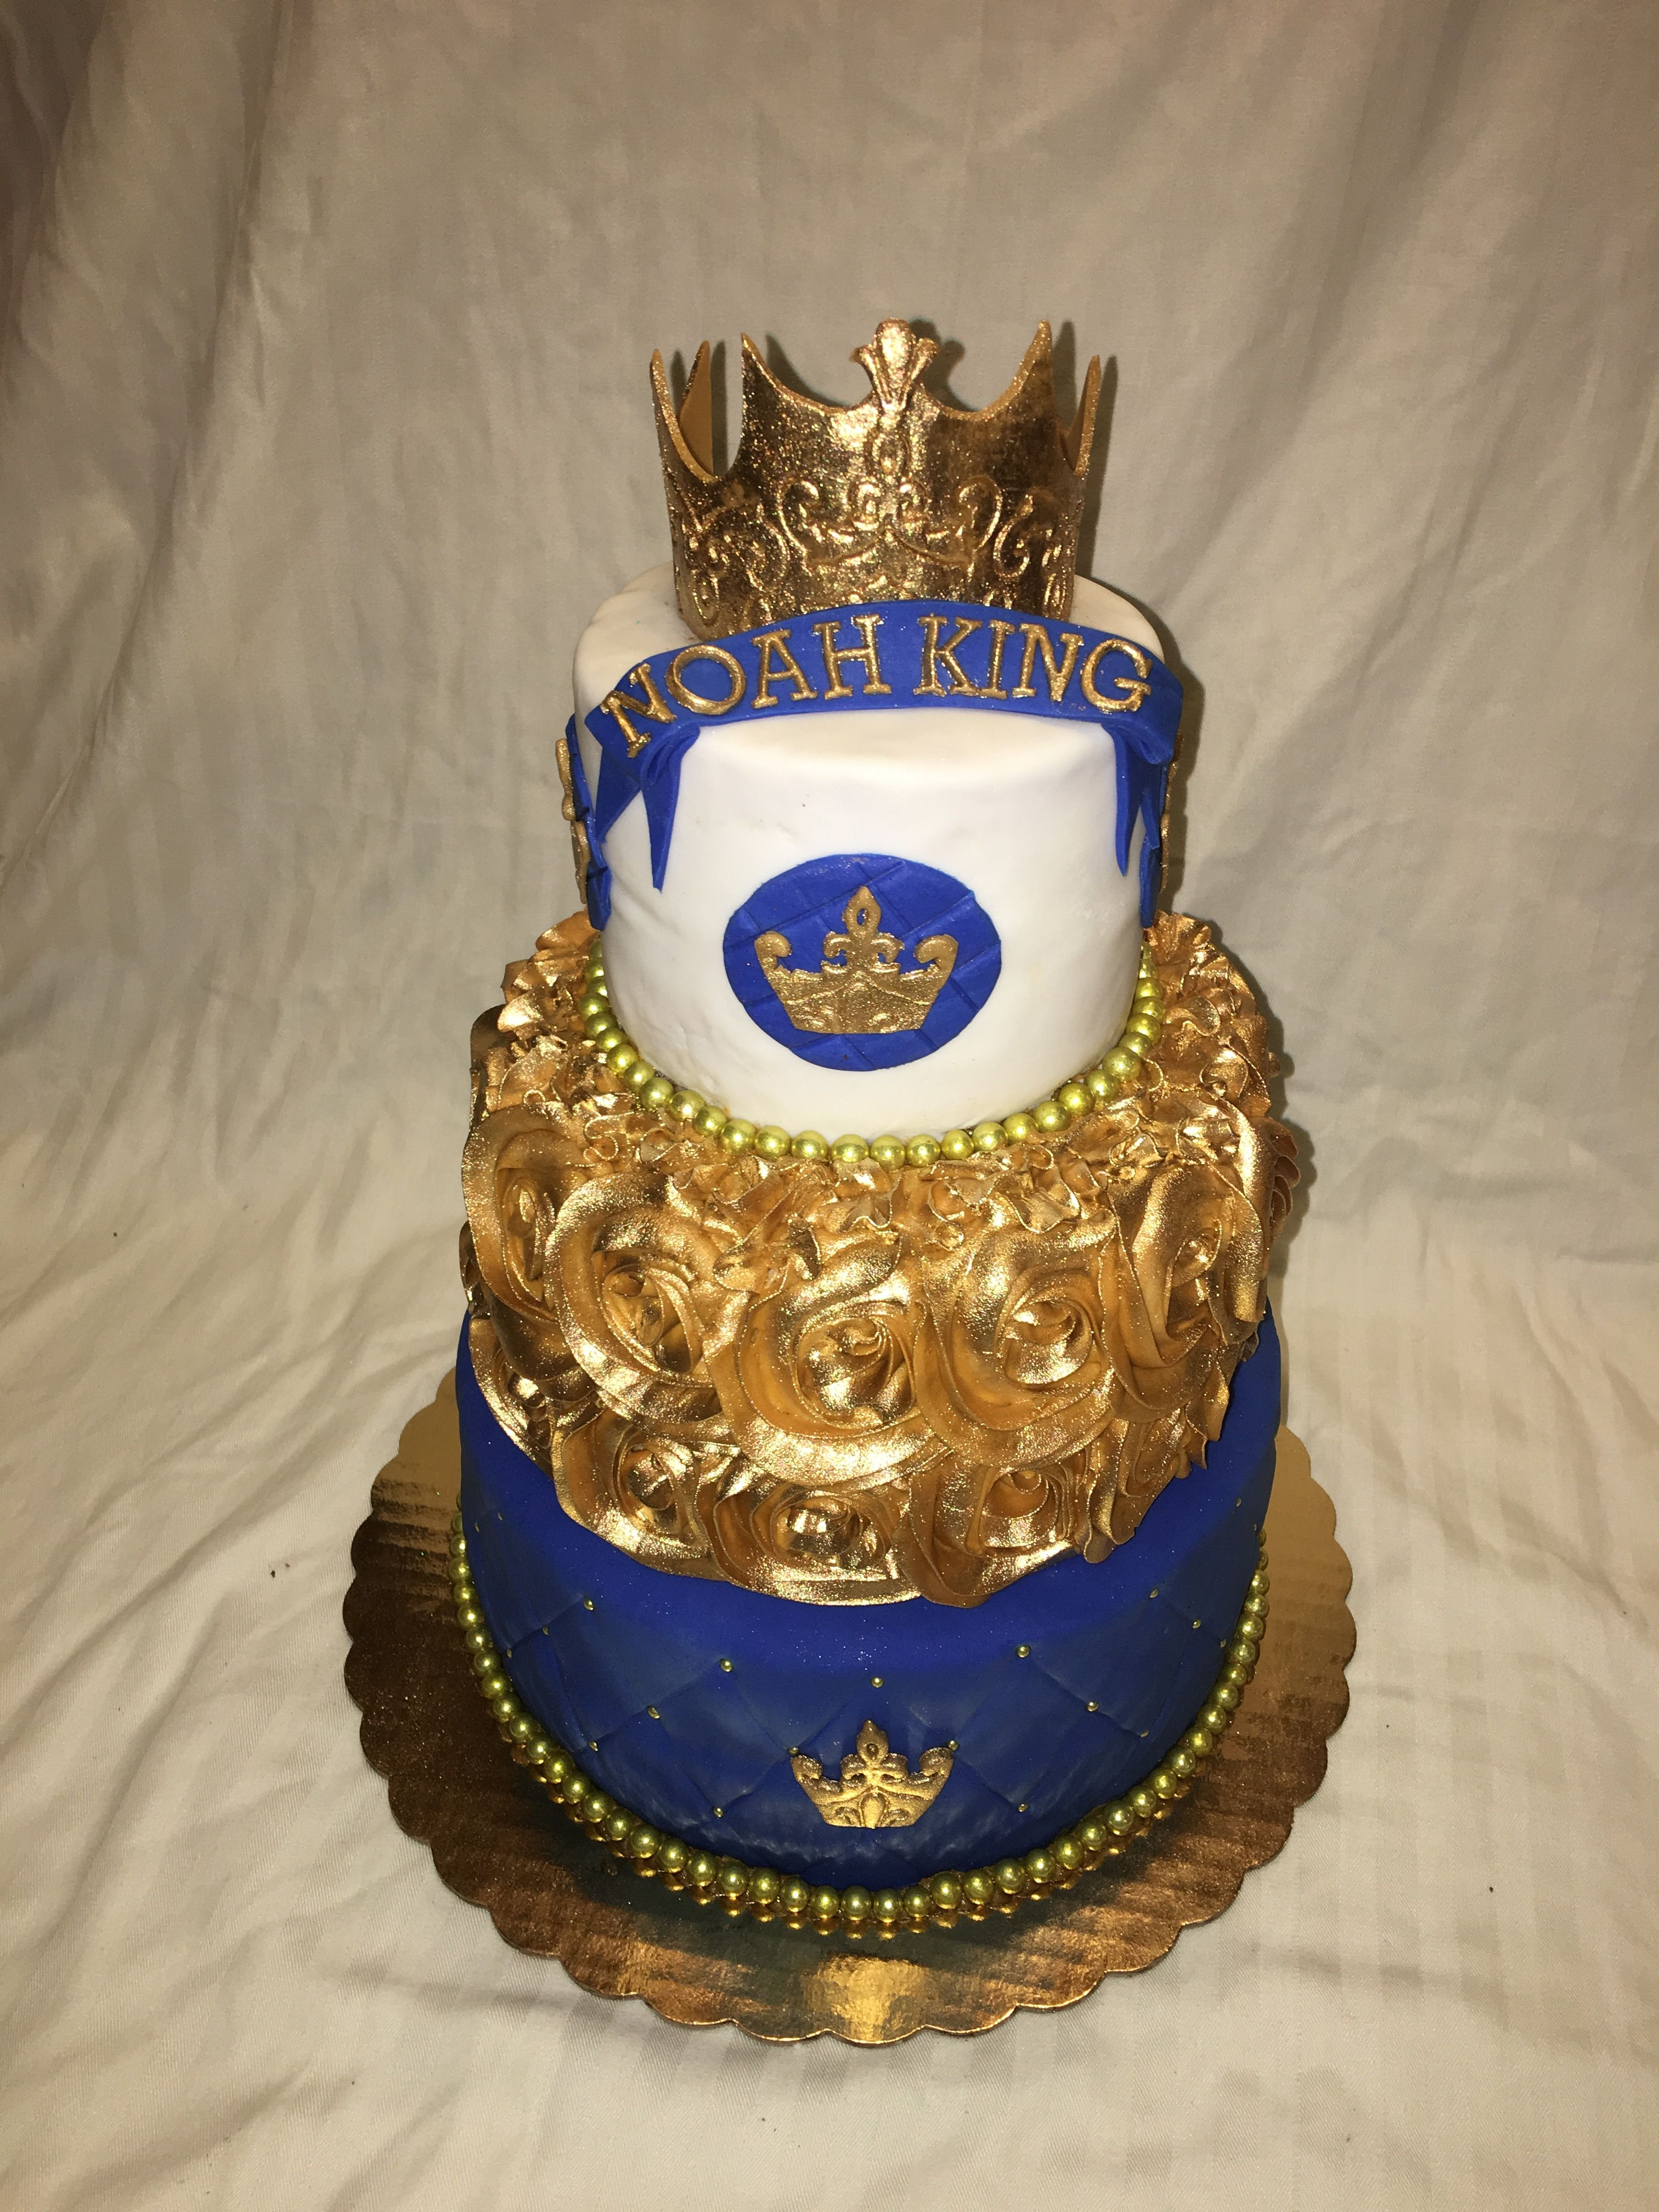 Prince Gold Crown Boy Baby Shower Cake By Inphinity Designs Please Visit My FaceBook Page Kandy Lloyd To Order